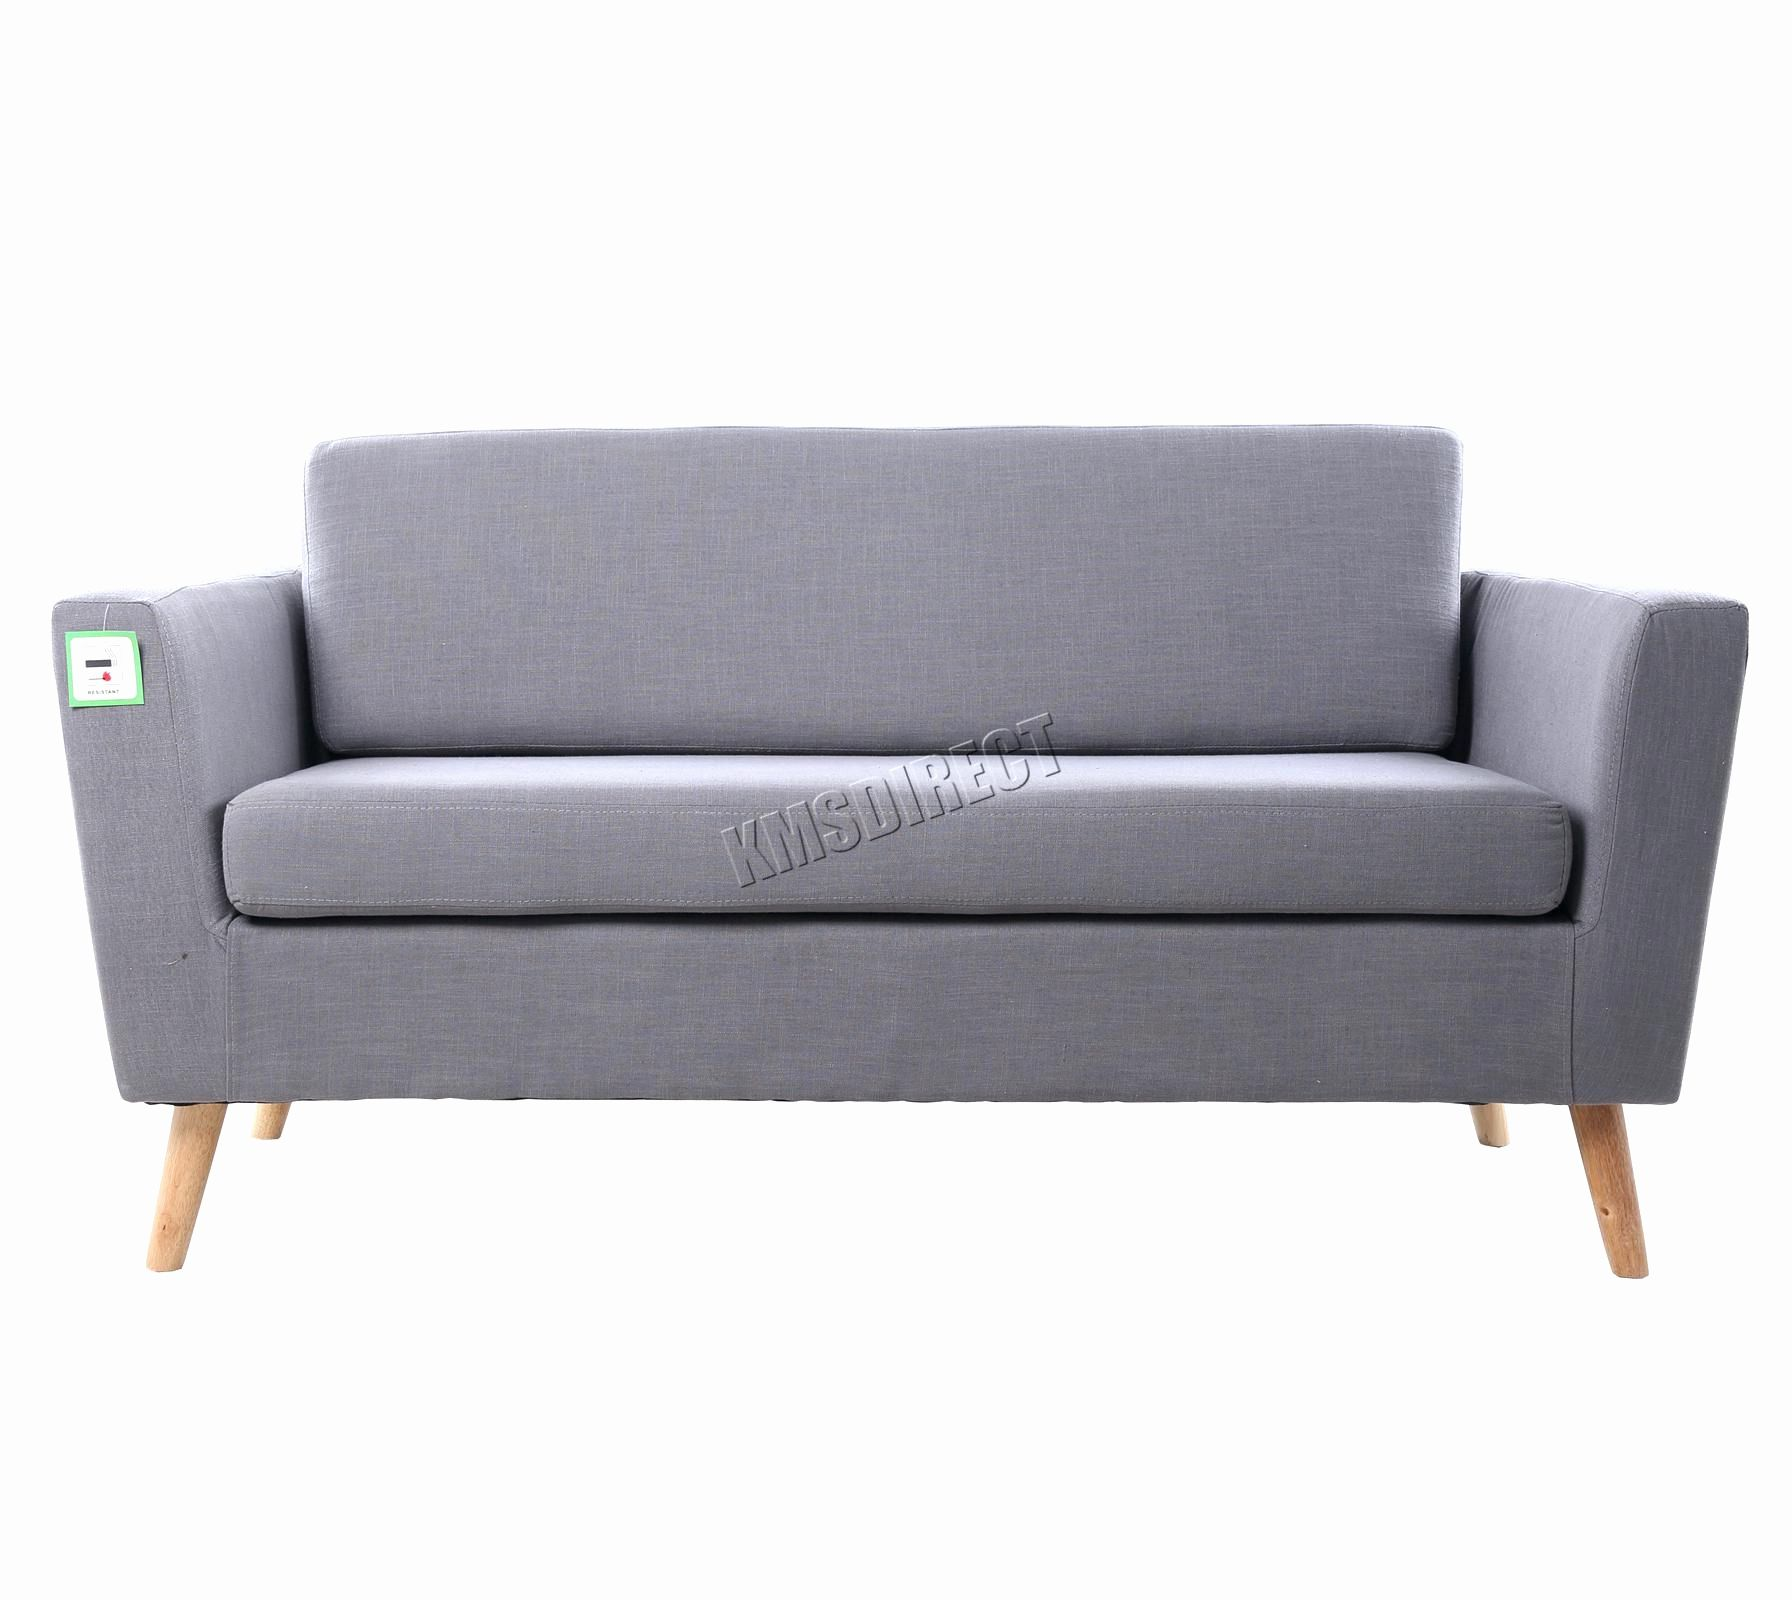 Luxury Small Office Sofa Shot Small Office Sofa Beautiful Office Design Sofas For Office Office Sofa For Sale In Lahore Office Sofa Sofa Sale Small Sofa